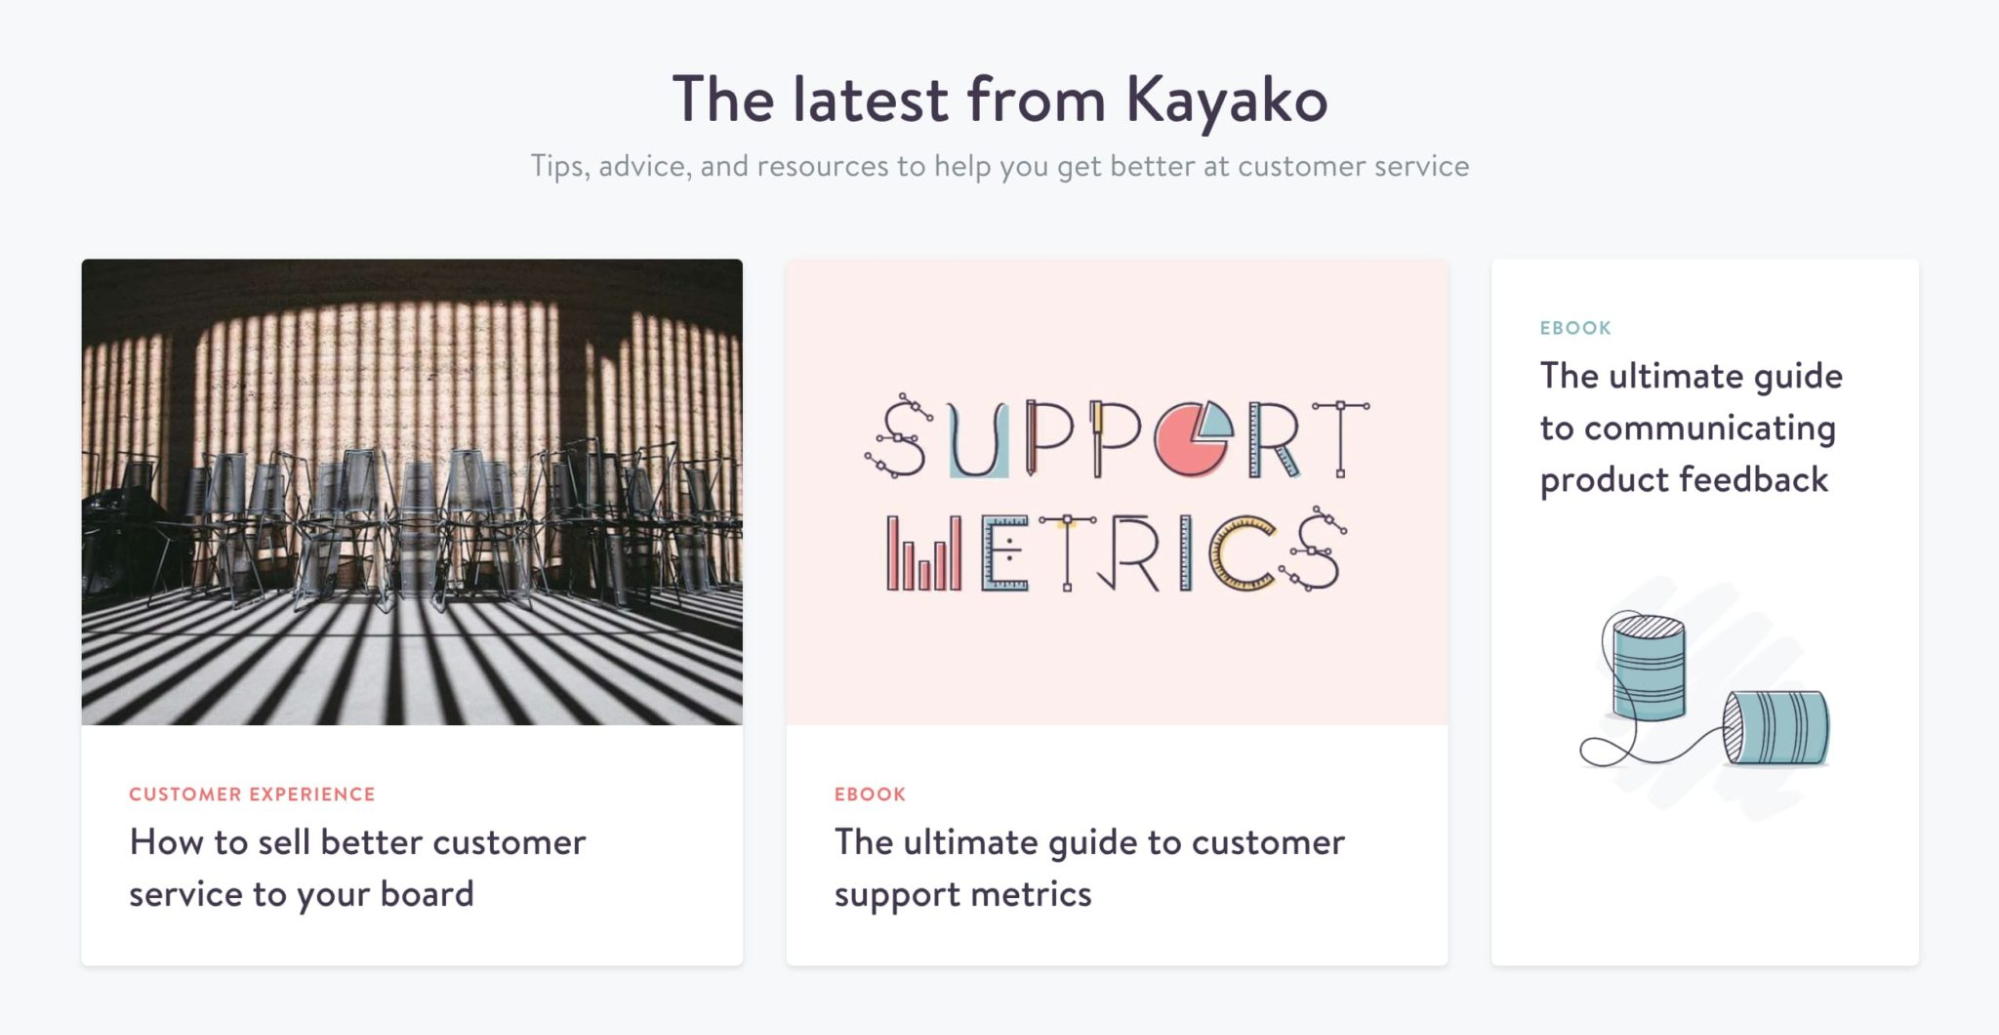 Kayako's landing page highlights recent content